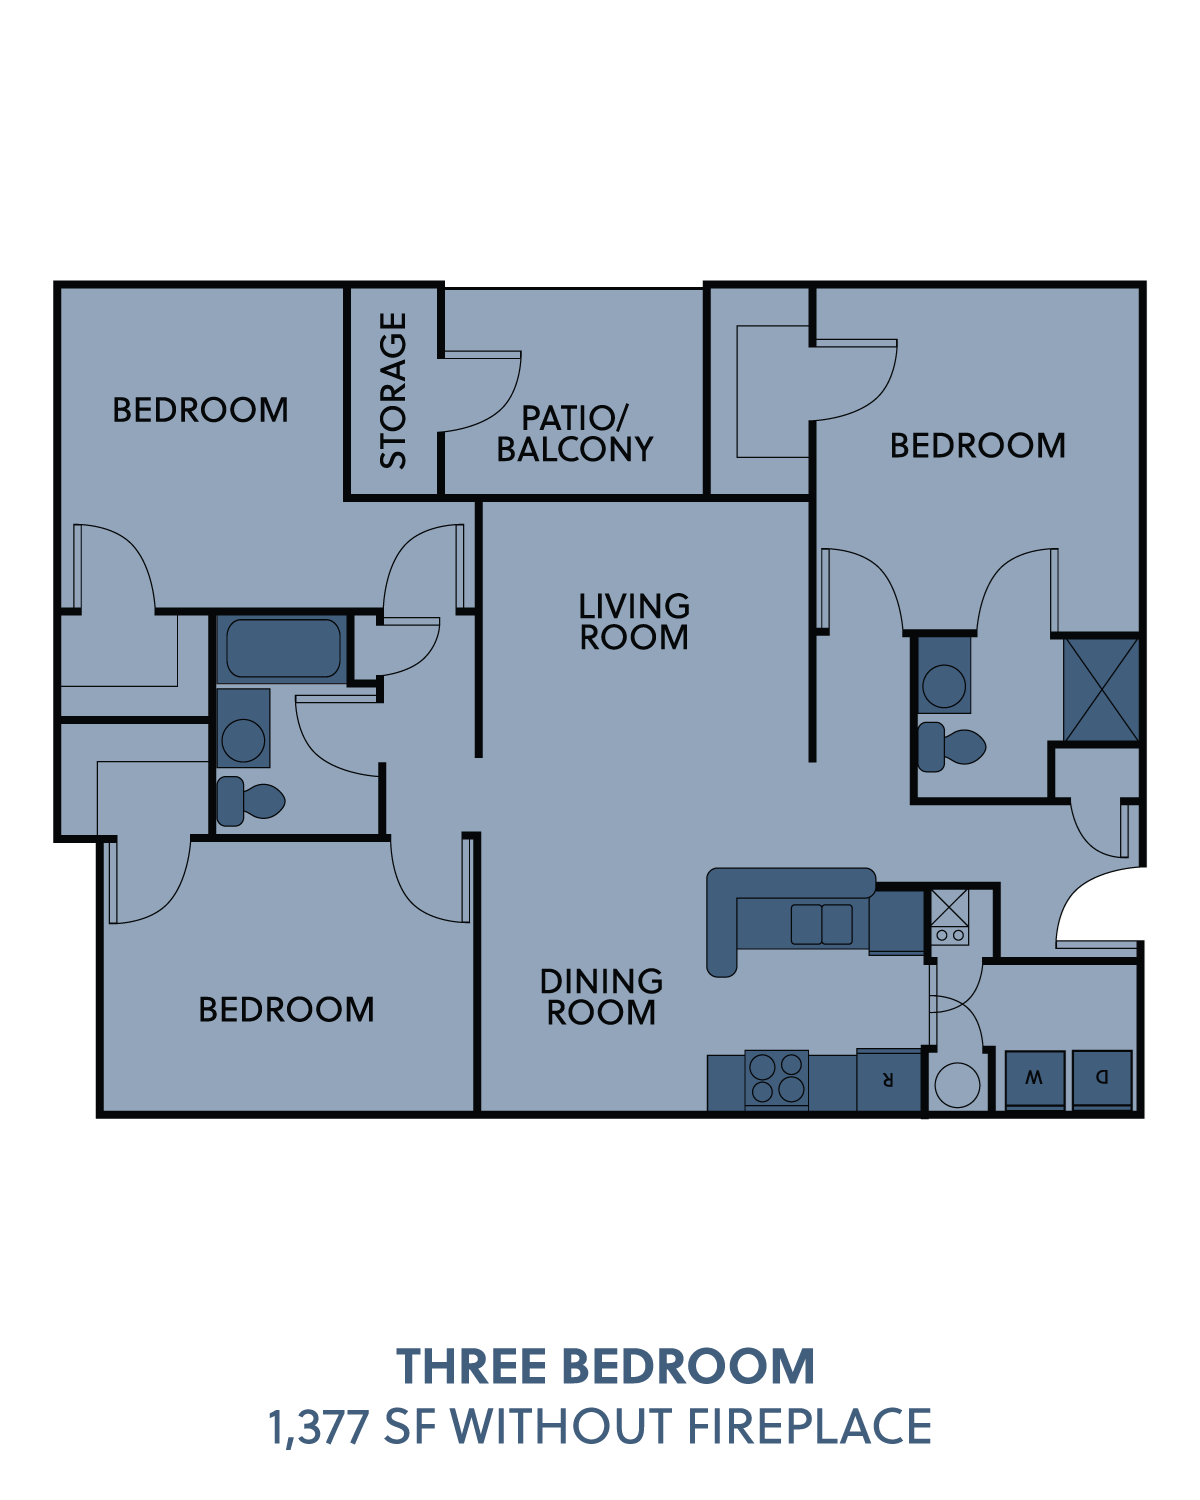 3 bedroom without fireplace